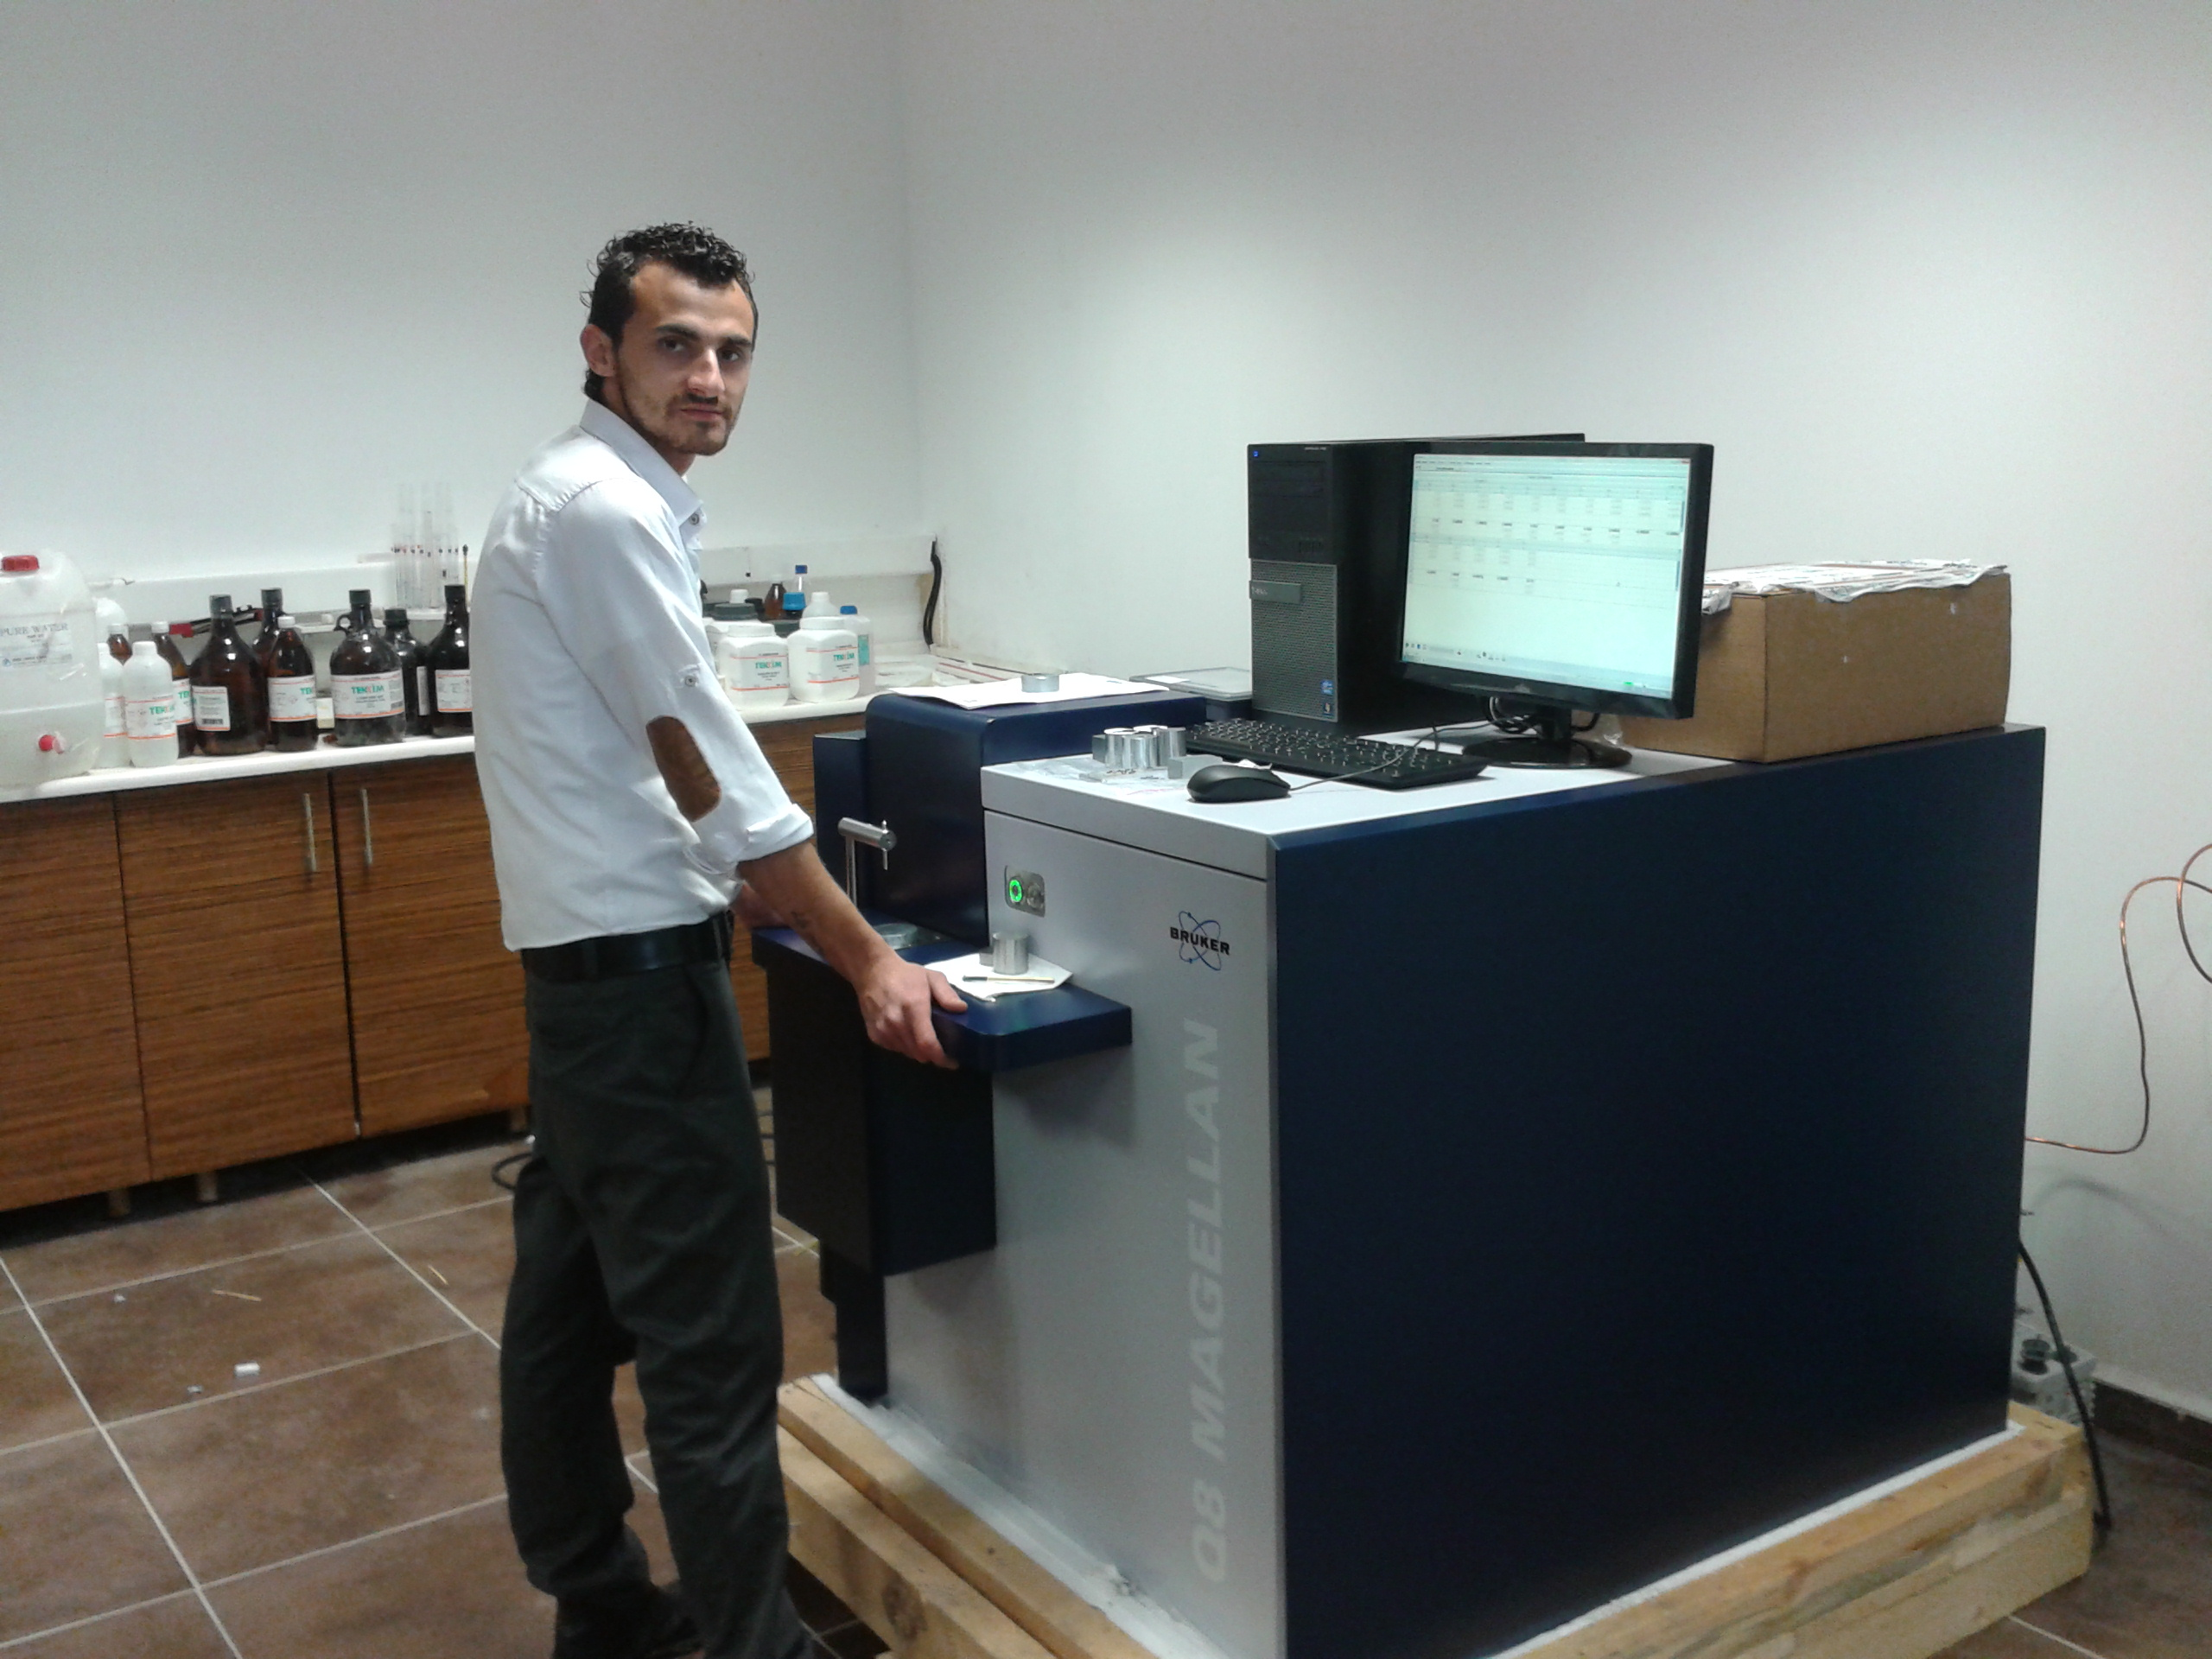 Q8 Magellan Spectrometer Chemical Analyzer Micha Galvanized Steel Construction sec. A. Ş.Firmasına have been delivered, and training was provided.